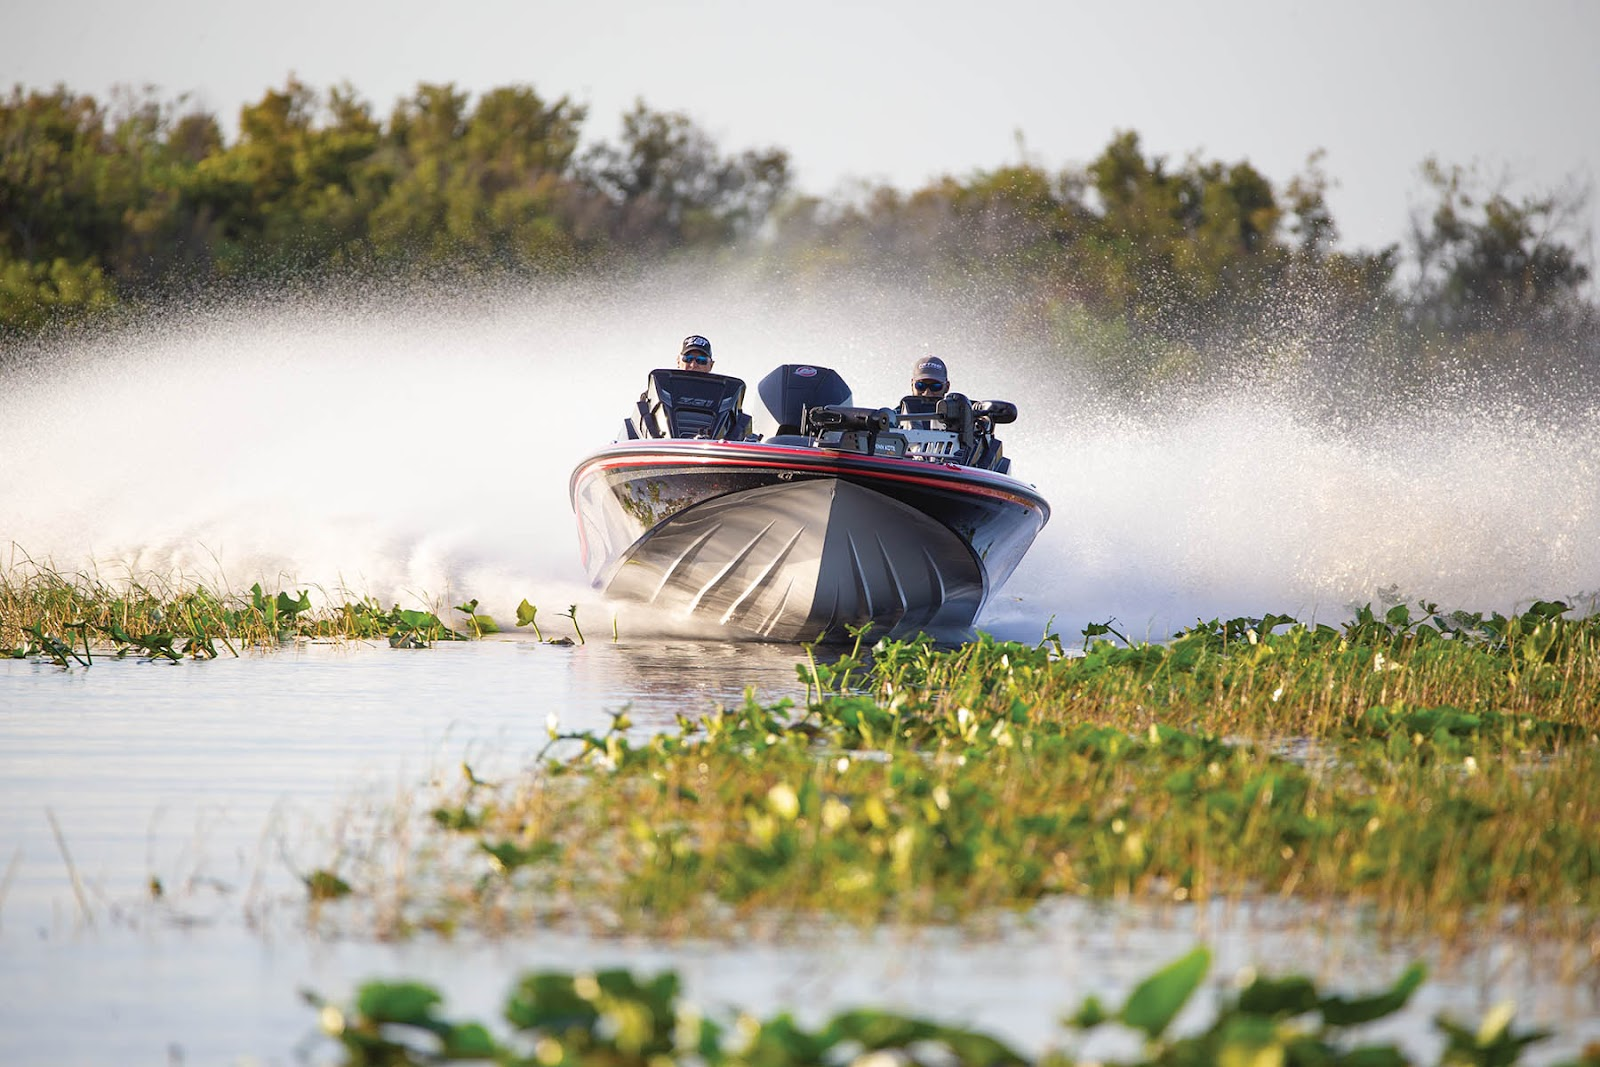 A NITRO ?amp;reg; Z21 races across a shallow lake in this file photo.